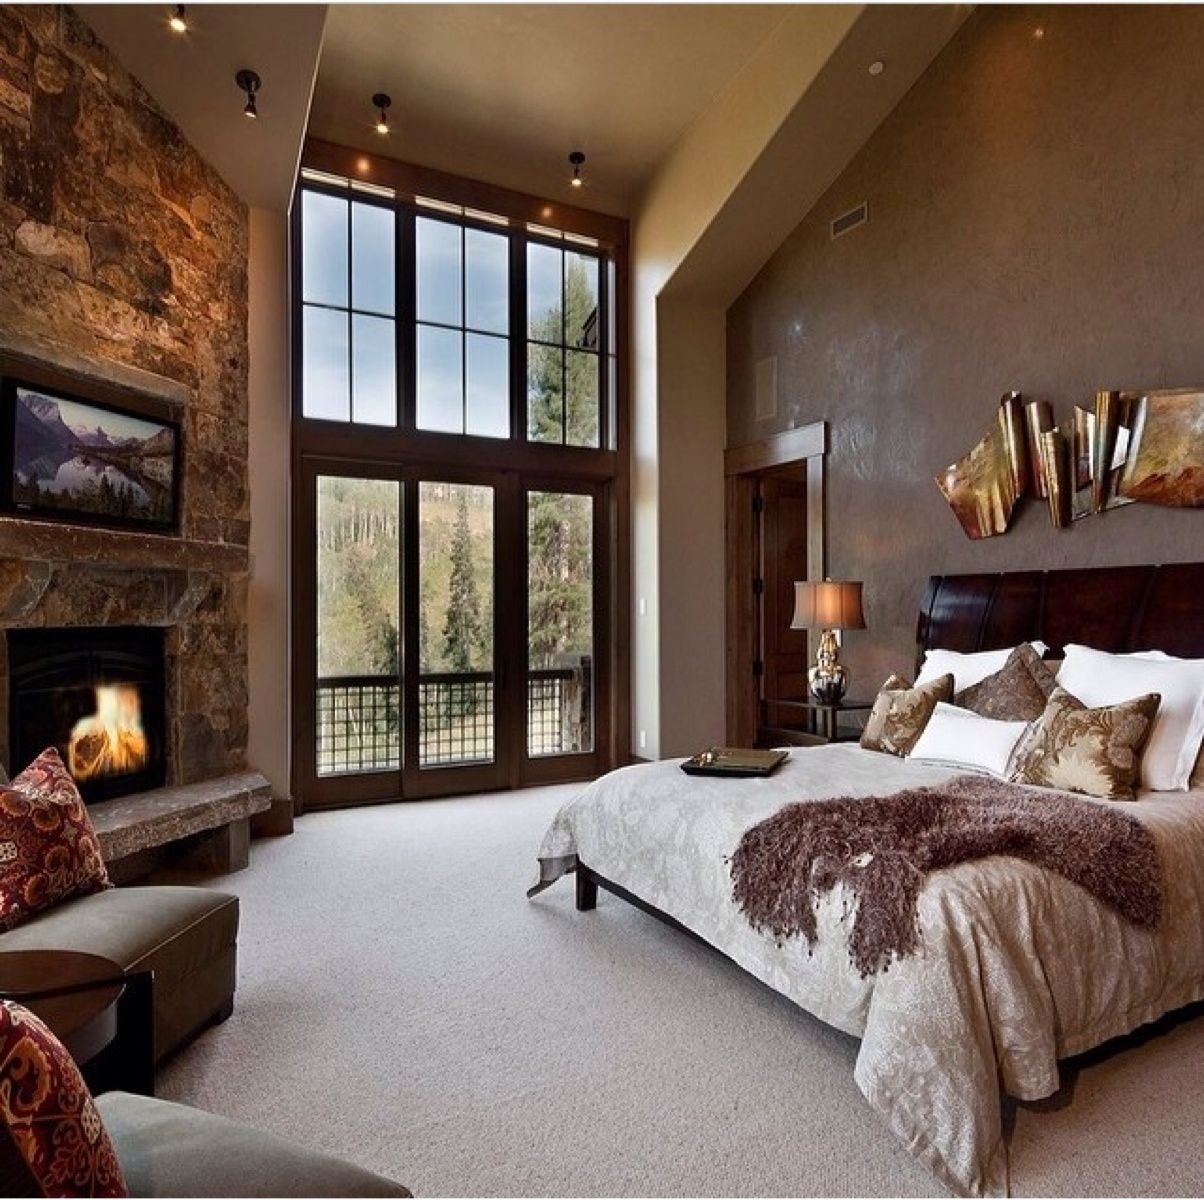 Fabulous master bedroom decorating ideas guest bedrooms small